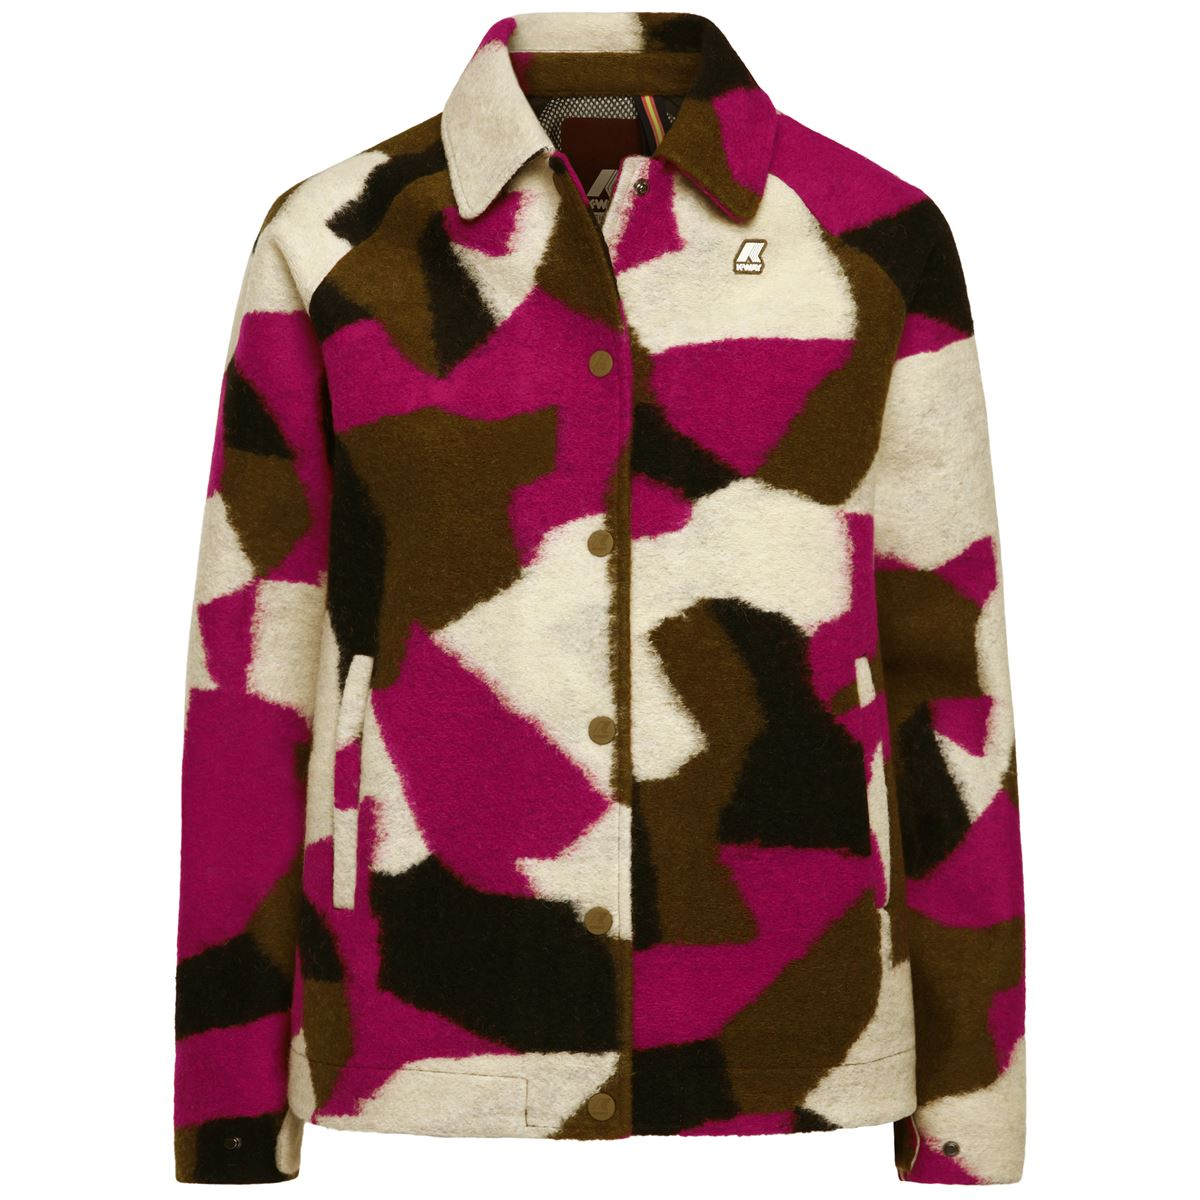 Giubbotto impermeabile K-way donna SOIZIC WOOL 3 LAYER GRAPHIC-K00A5K0